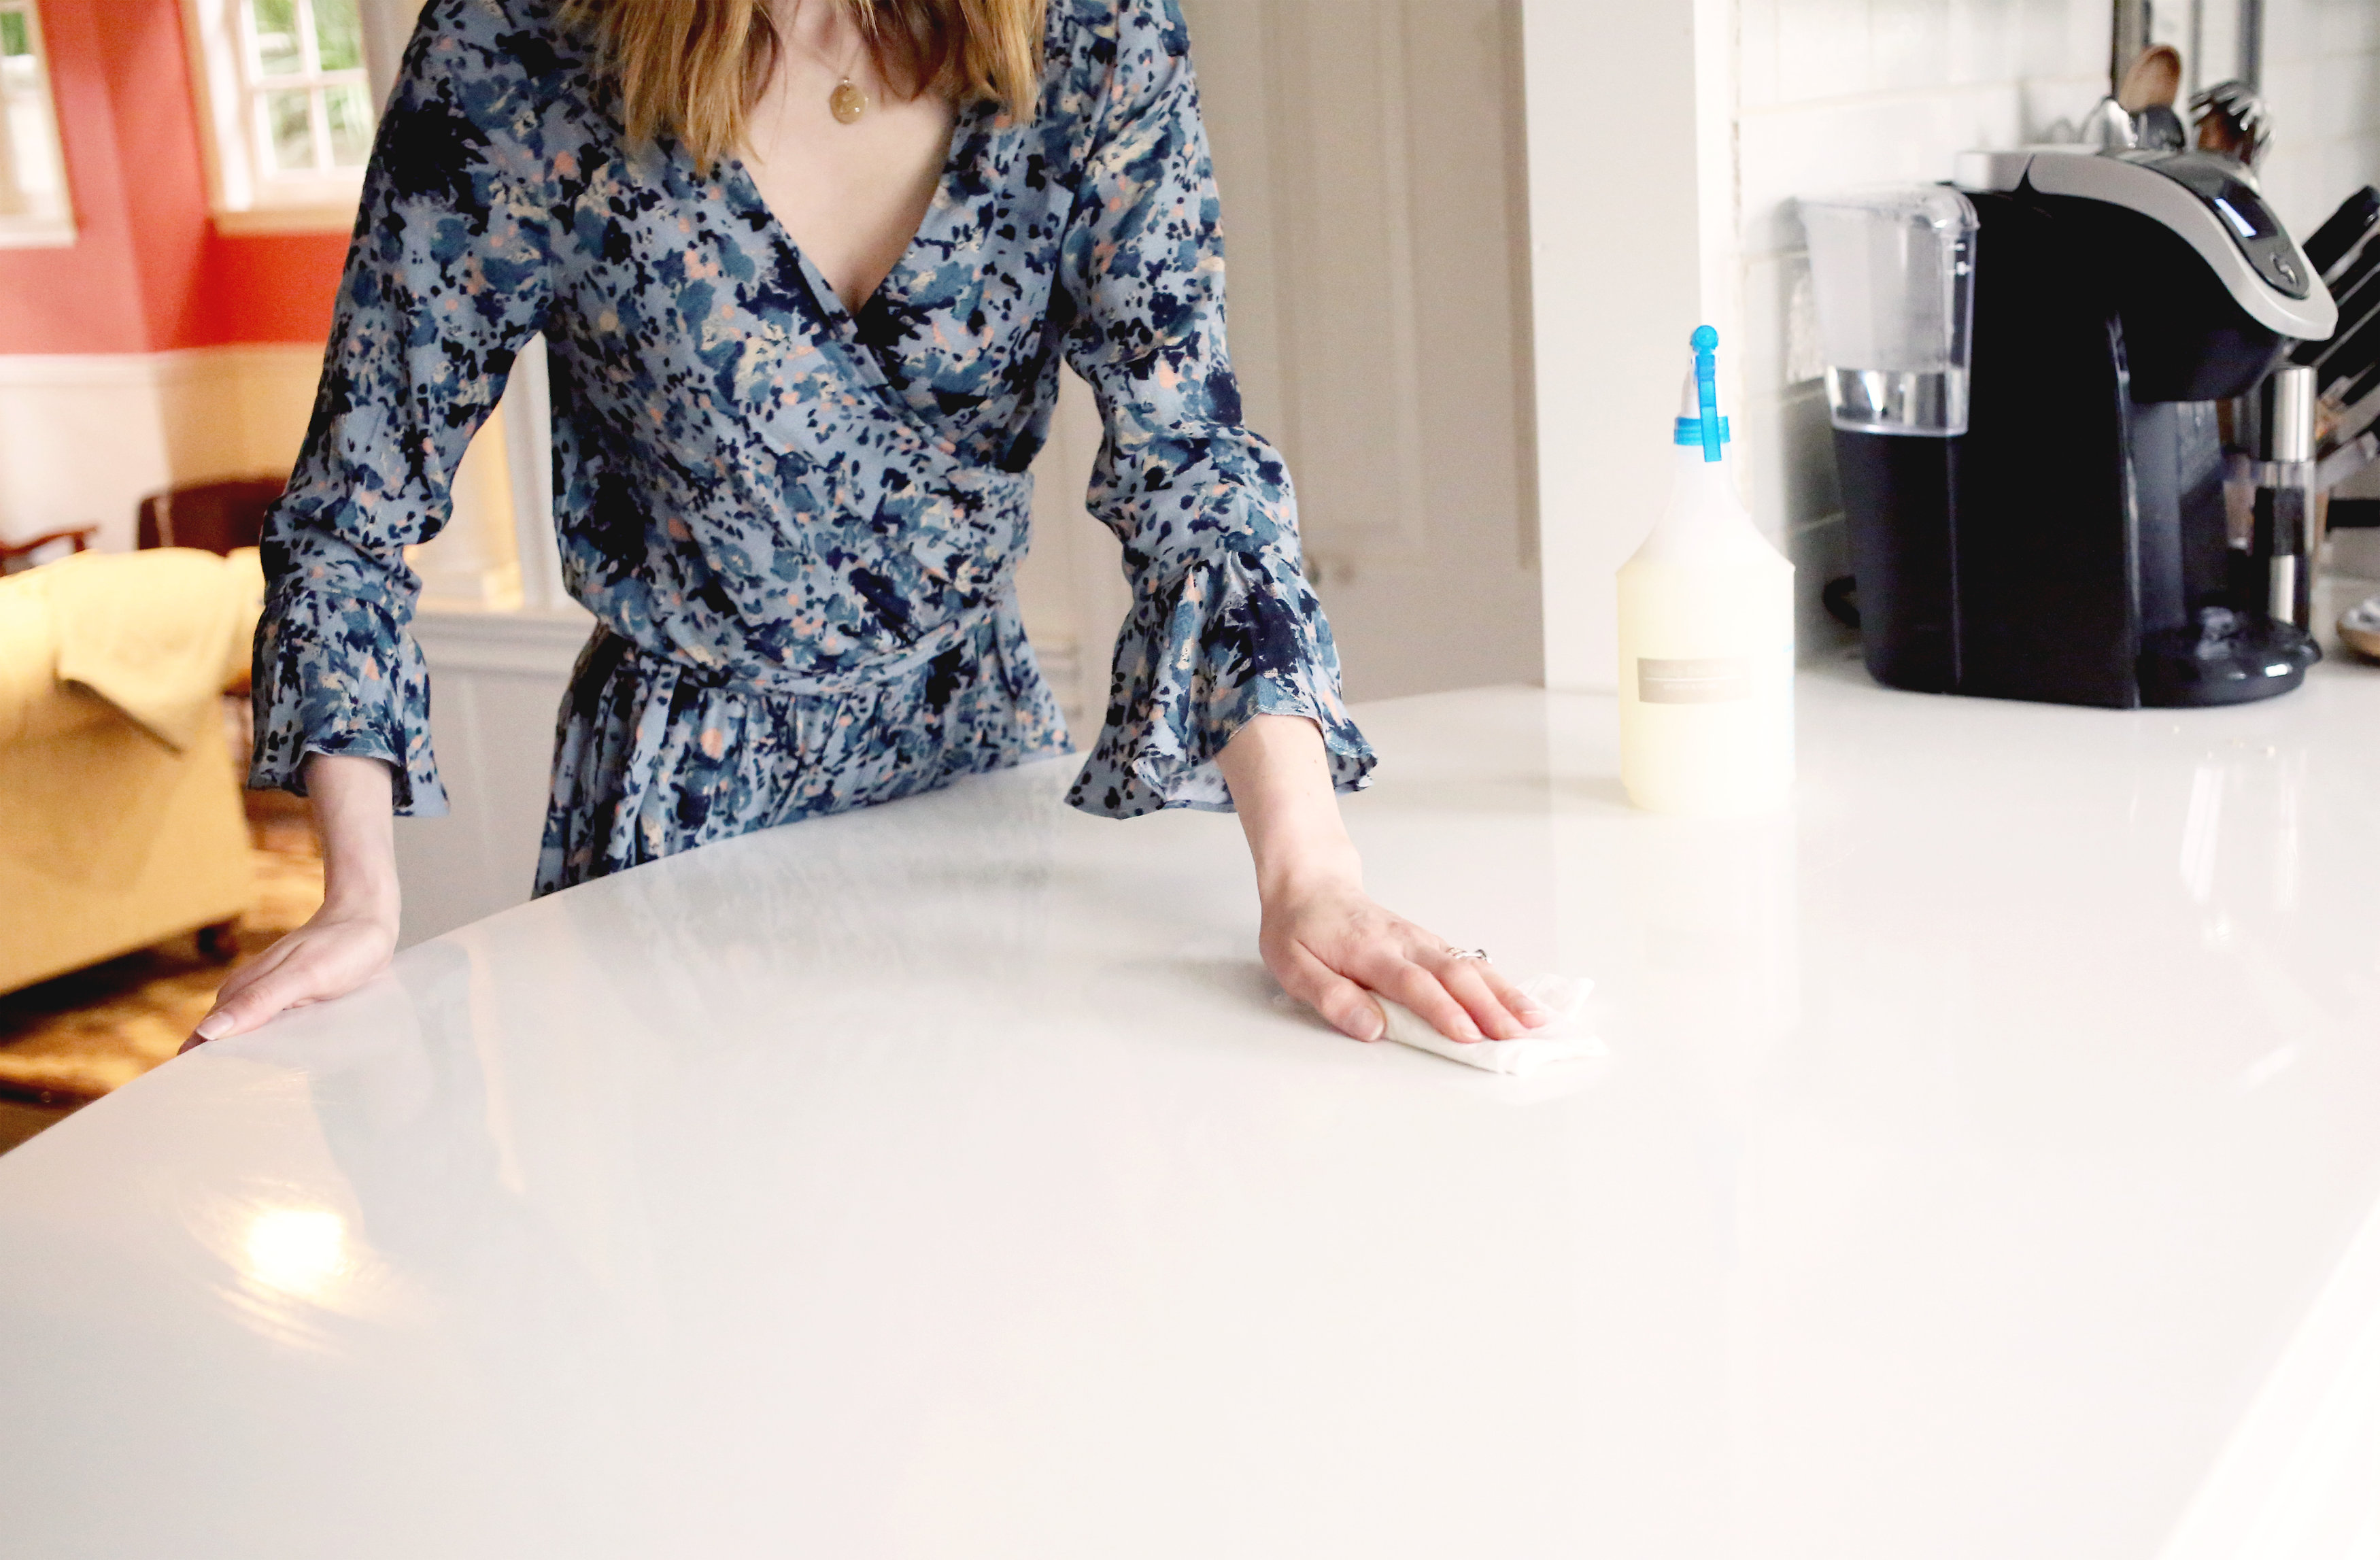 diy_cleaning_032